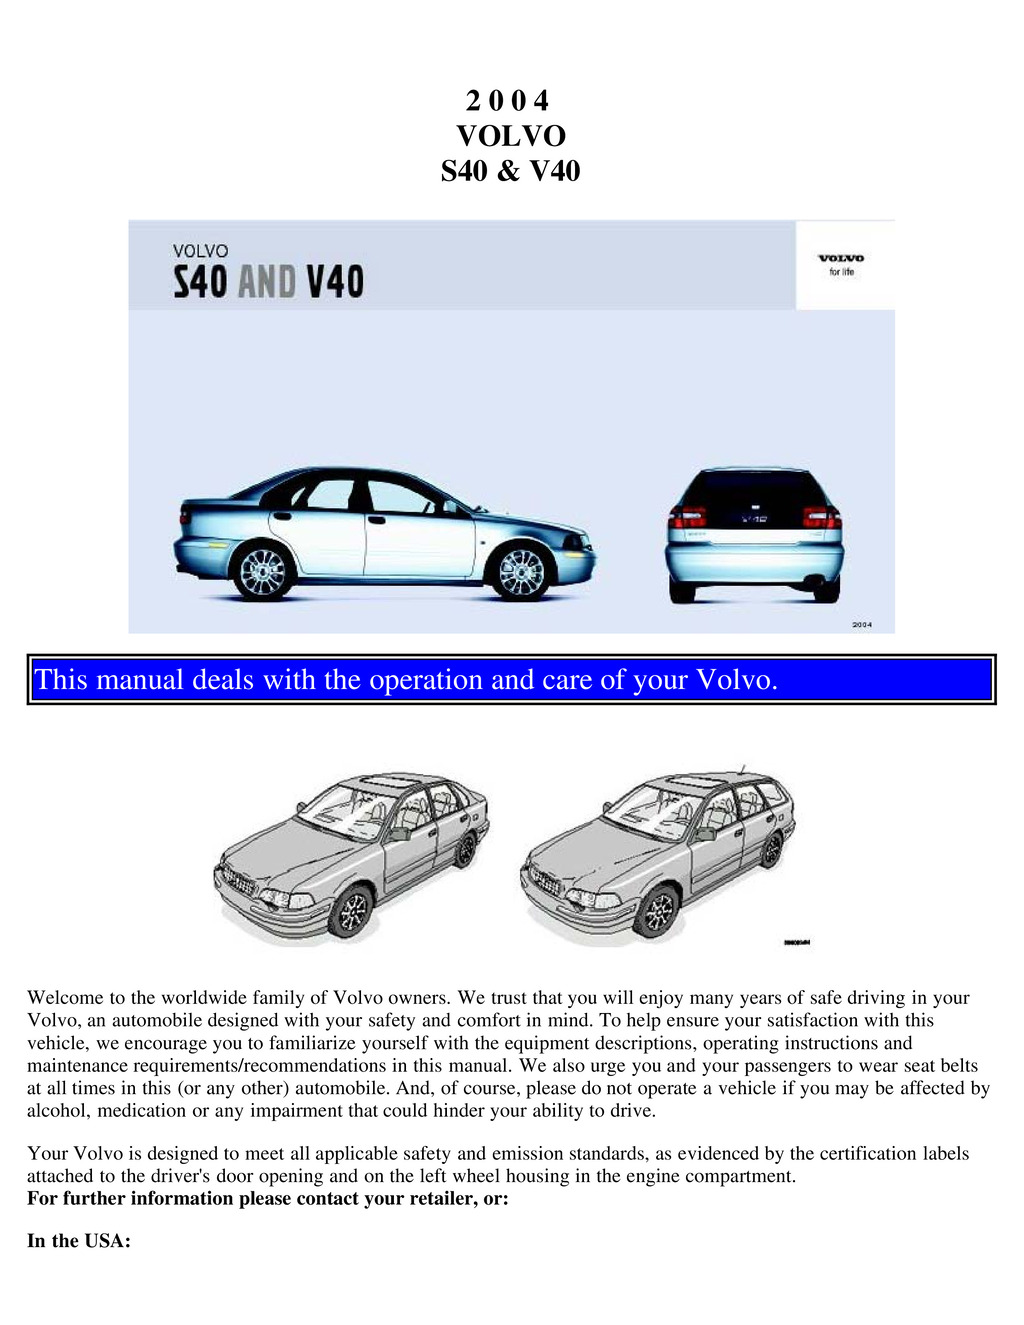 2004 Volvo S40 V40 owners manual